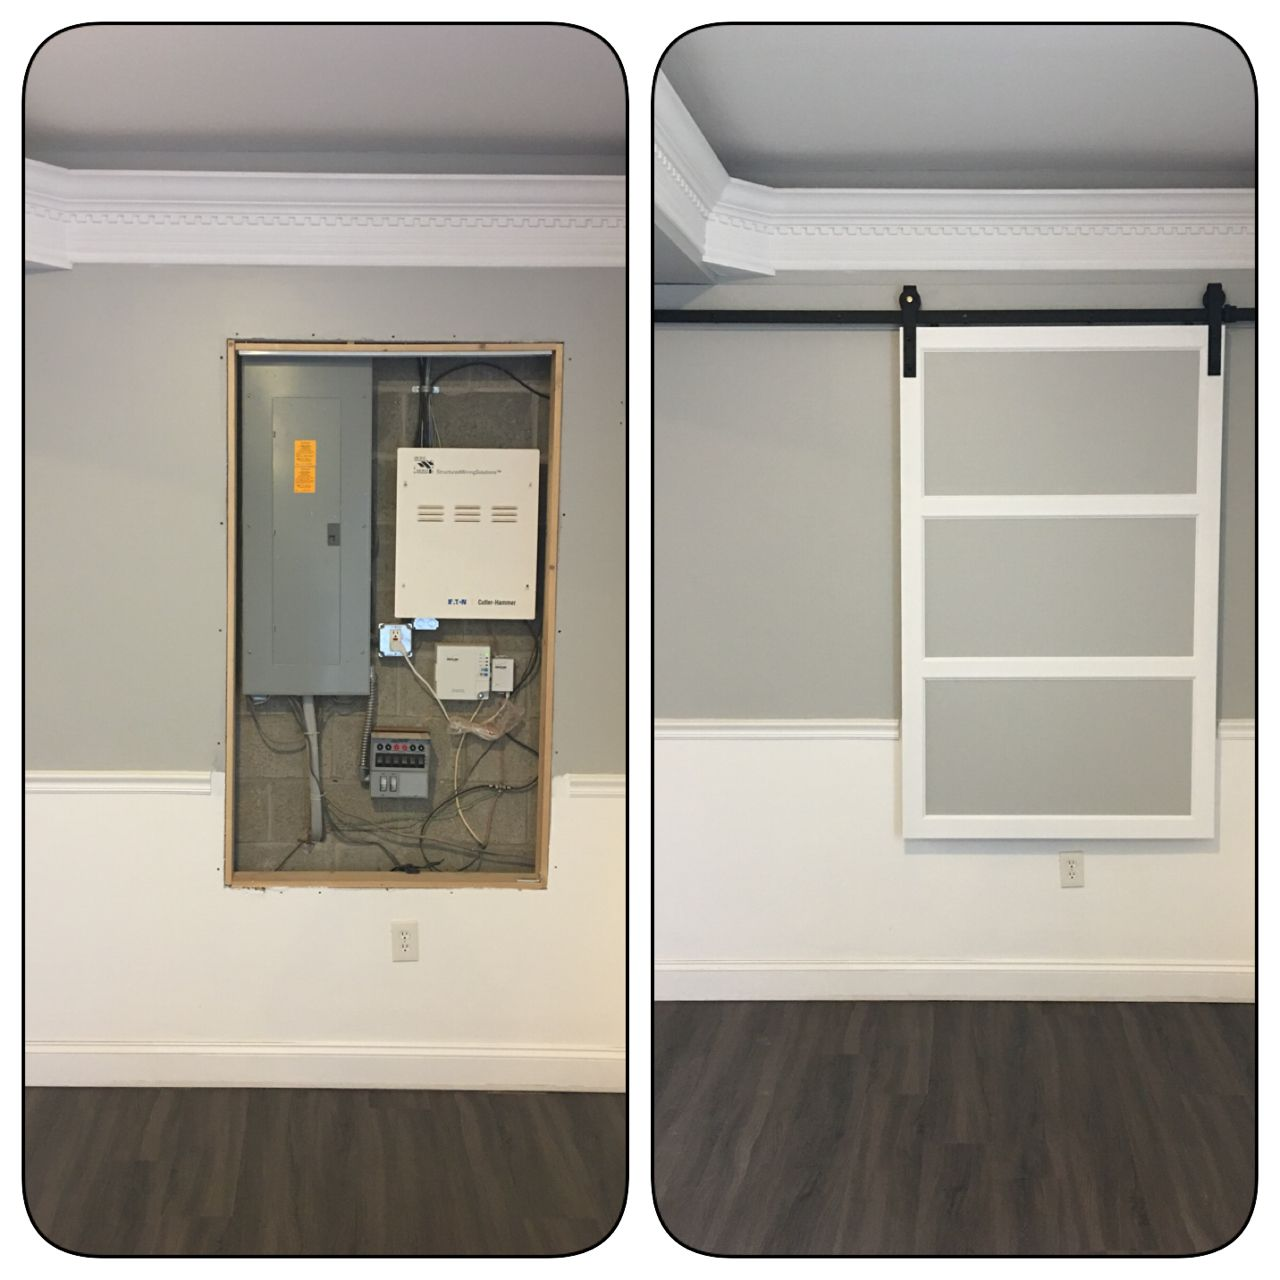 Modern Barn Door to cover fuse box